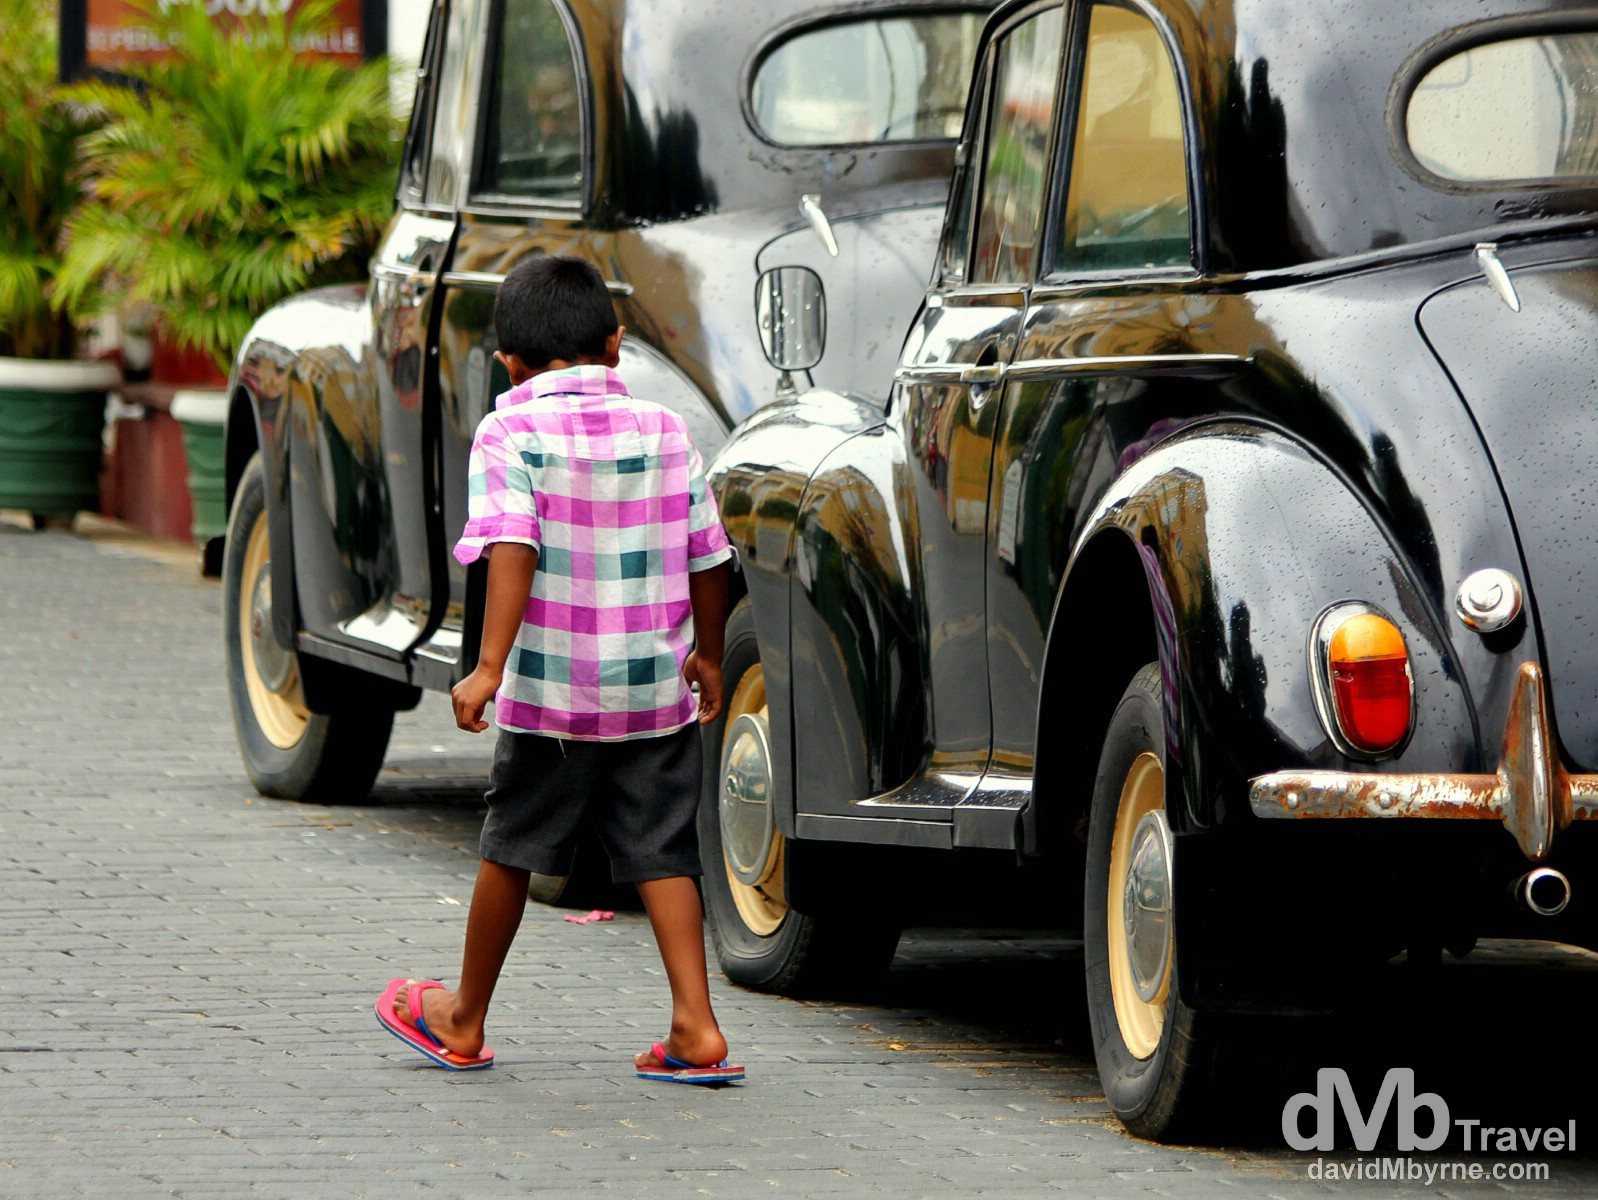 On the streets of Galle, southern Sri Lanka. September 2nd 2012.